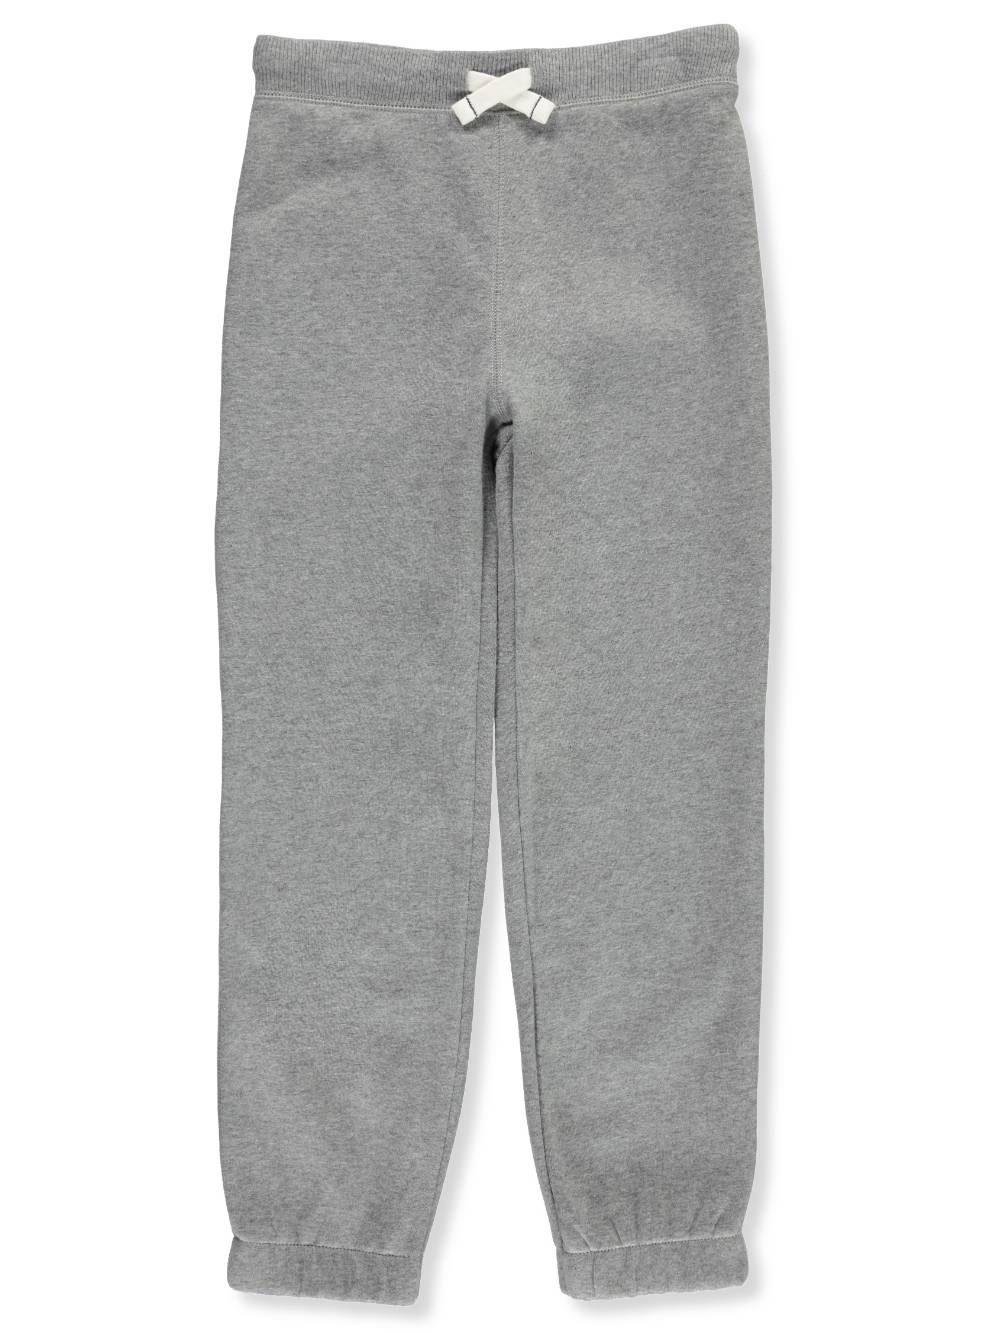 Happy Camper Boys Fleece Pant Jogger Fleece Pants